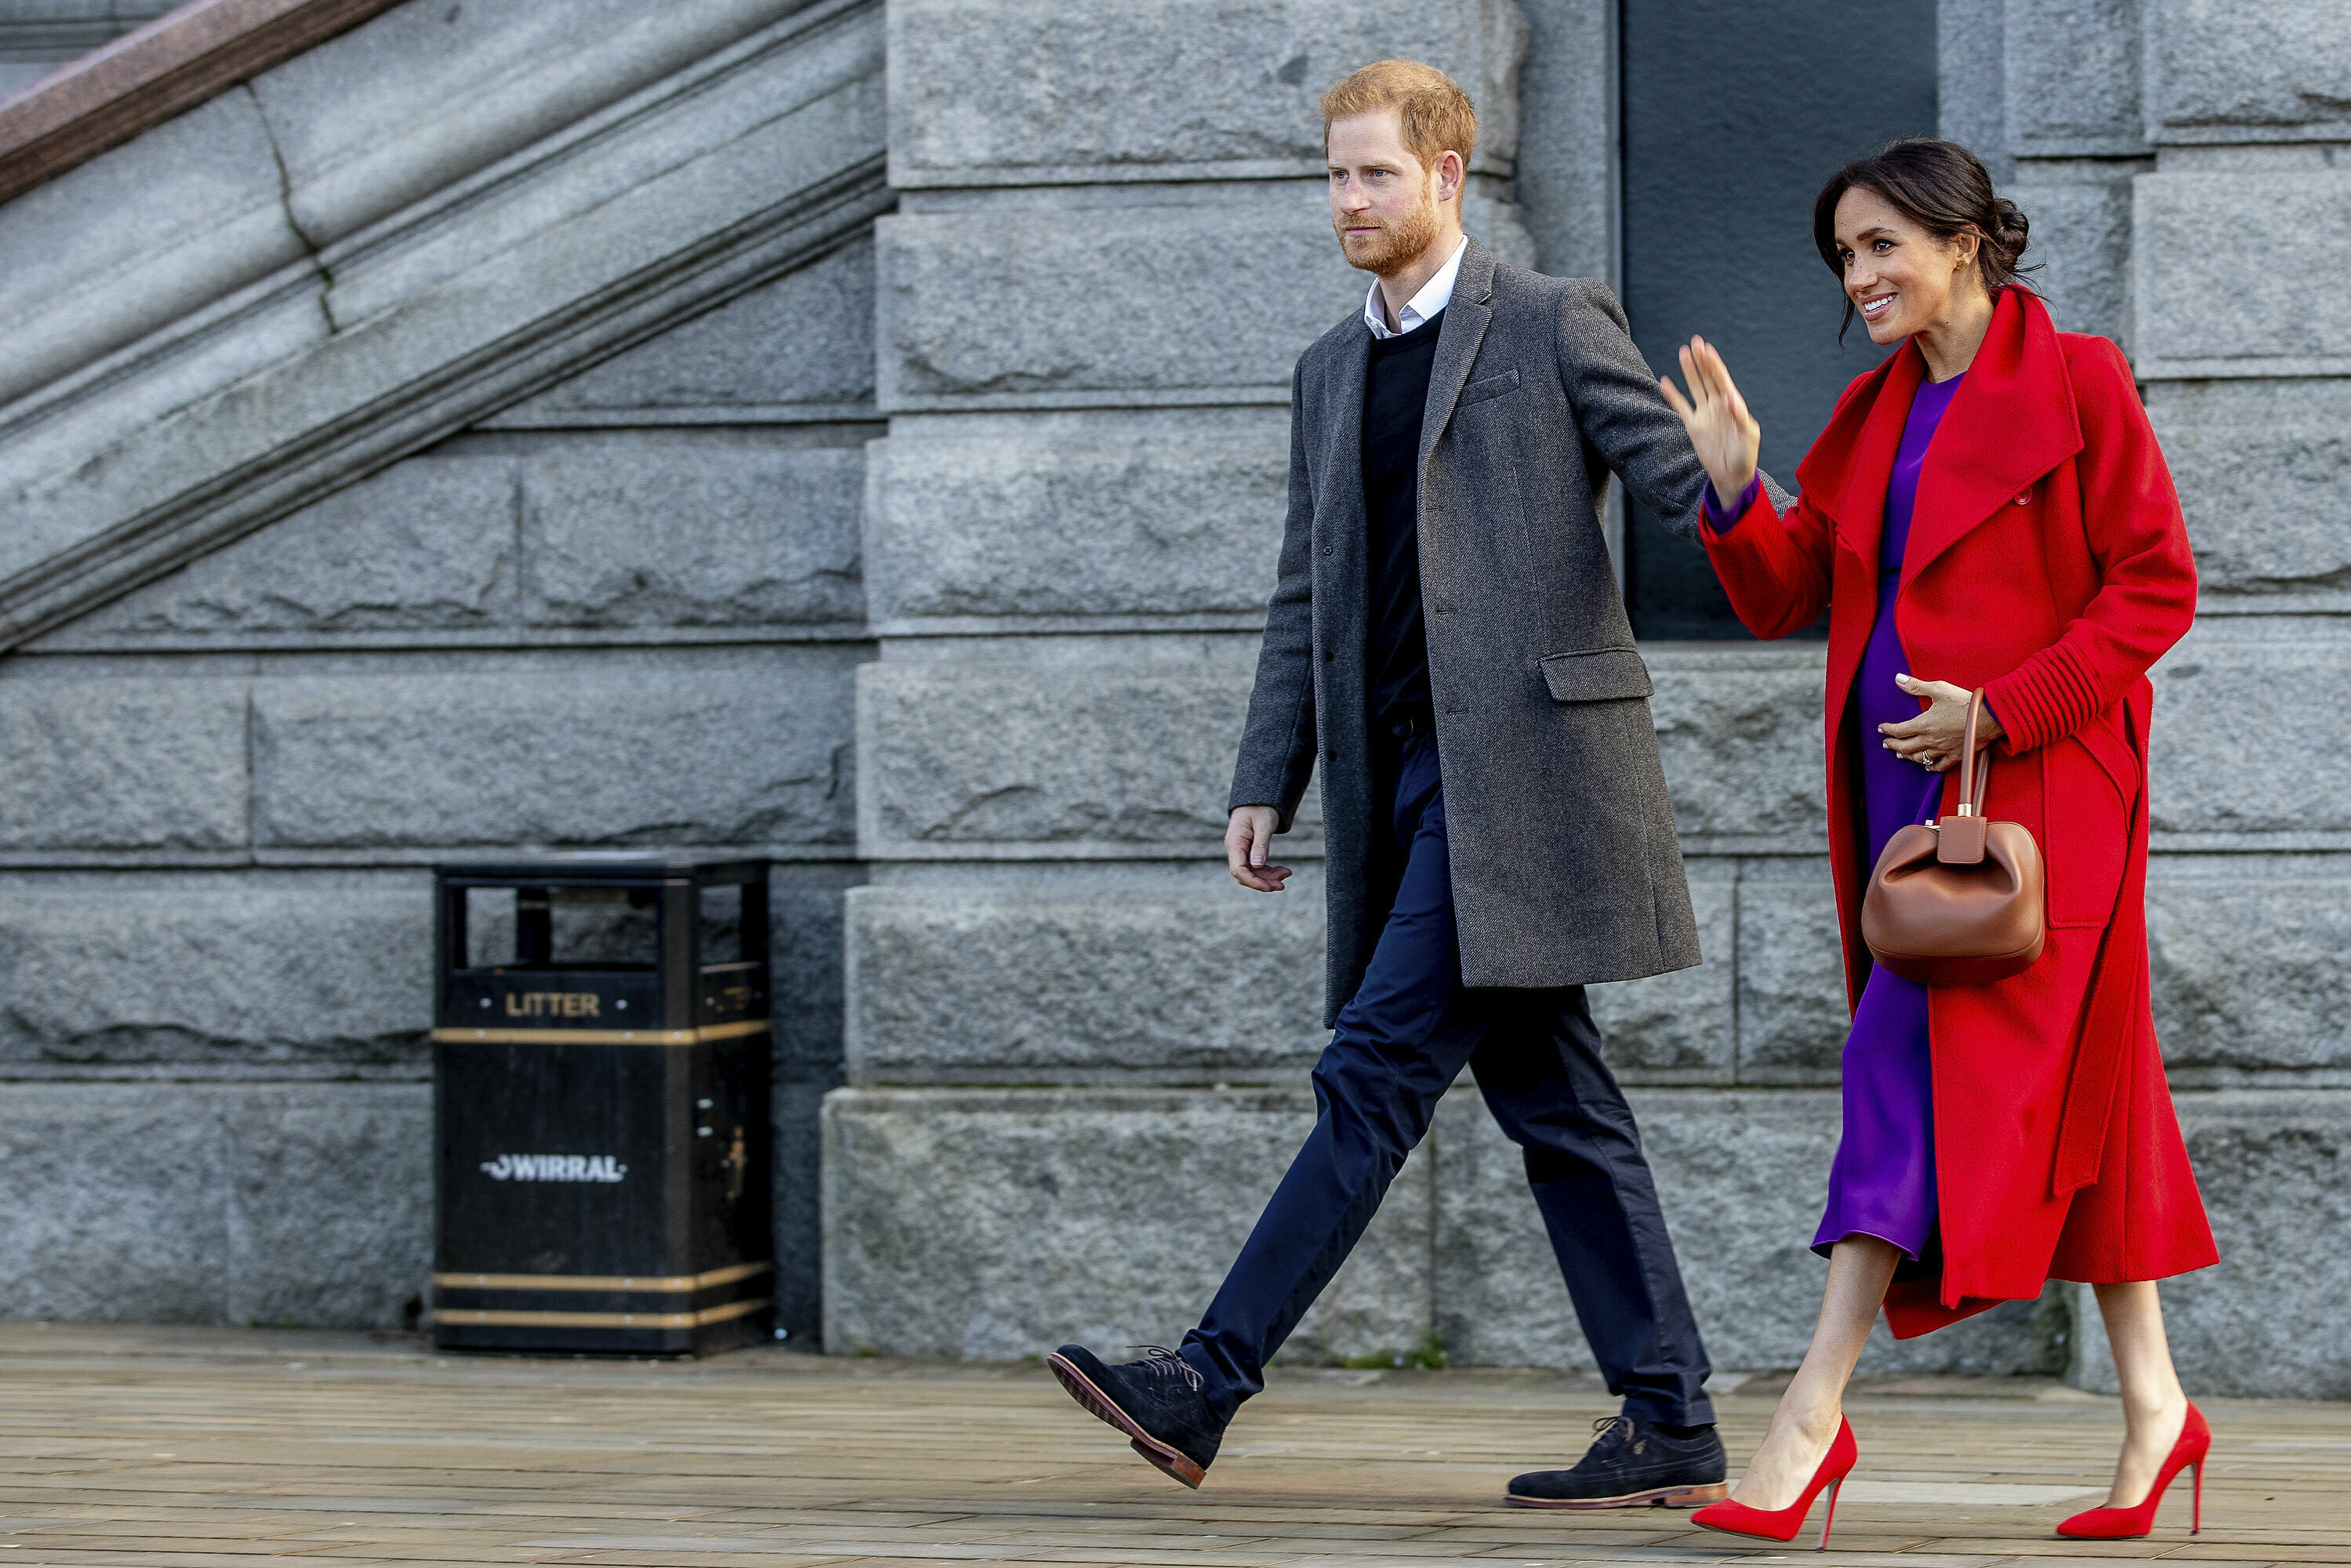 Baby boy or girl? It seems Harry and Meghan don't know yet